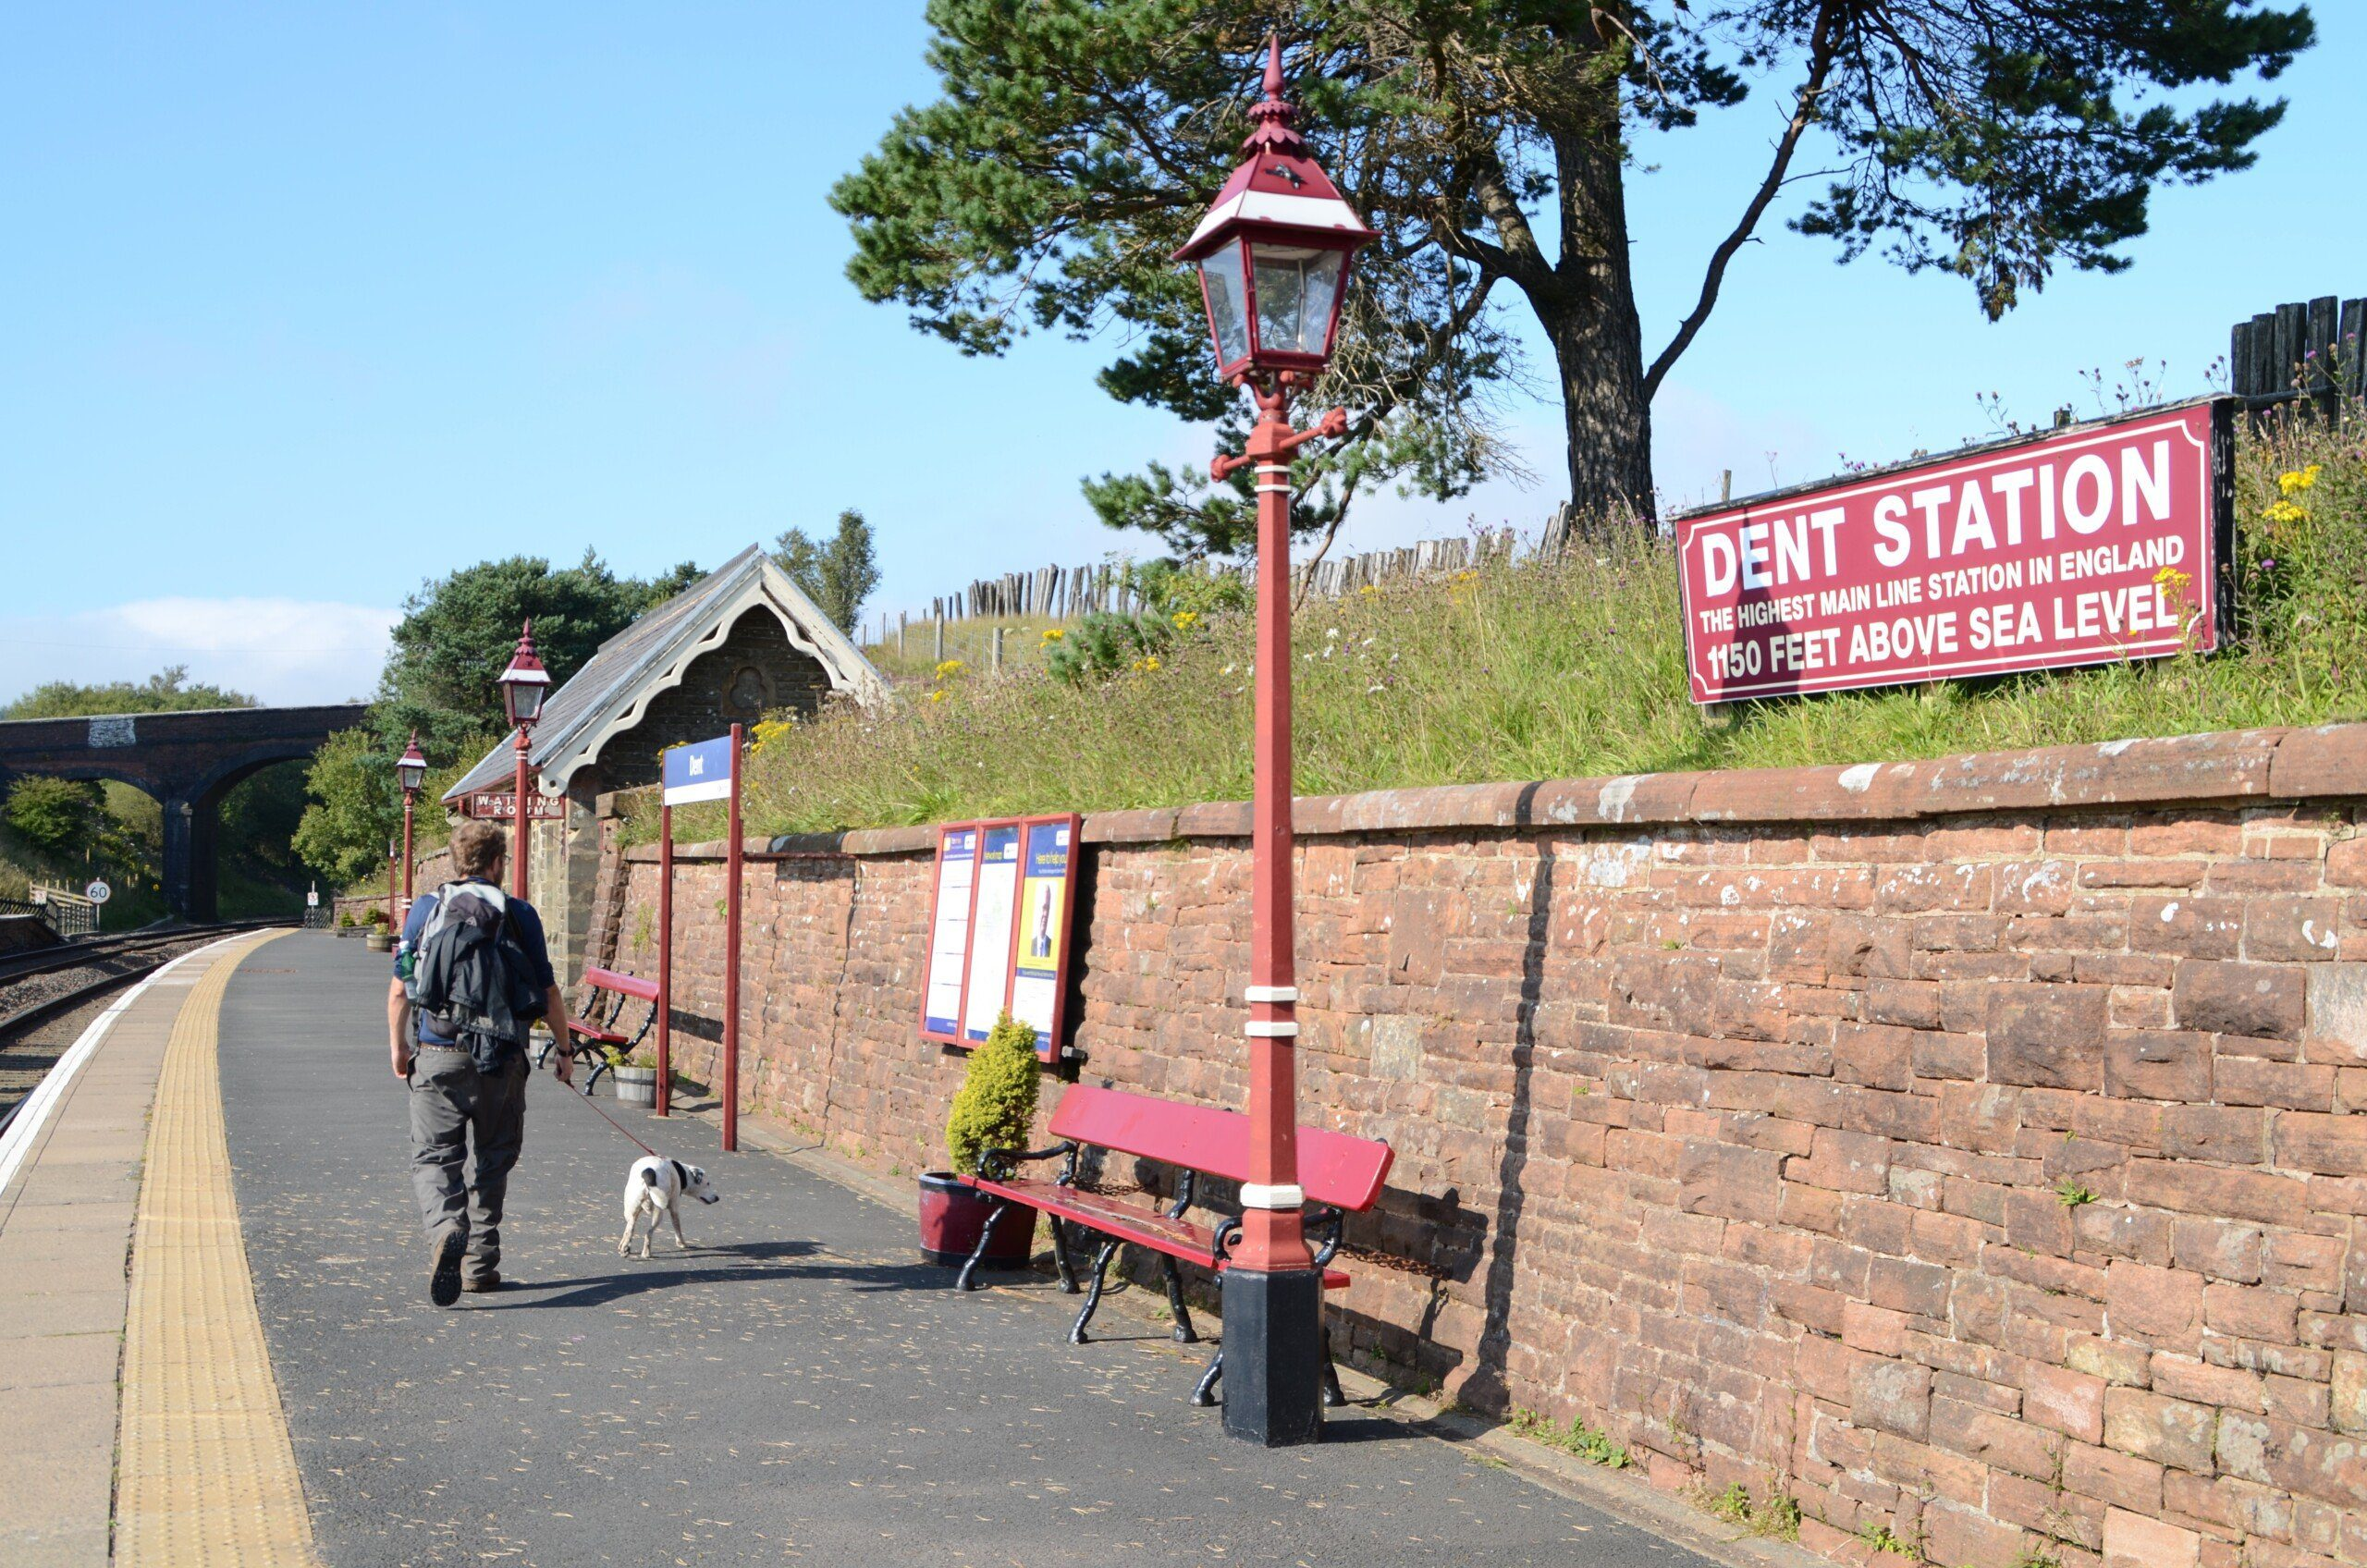 Platform of Dent Station, near the Dales Way, the highest main line station in England.